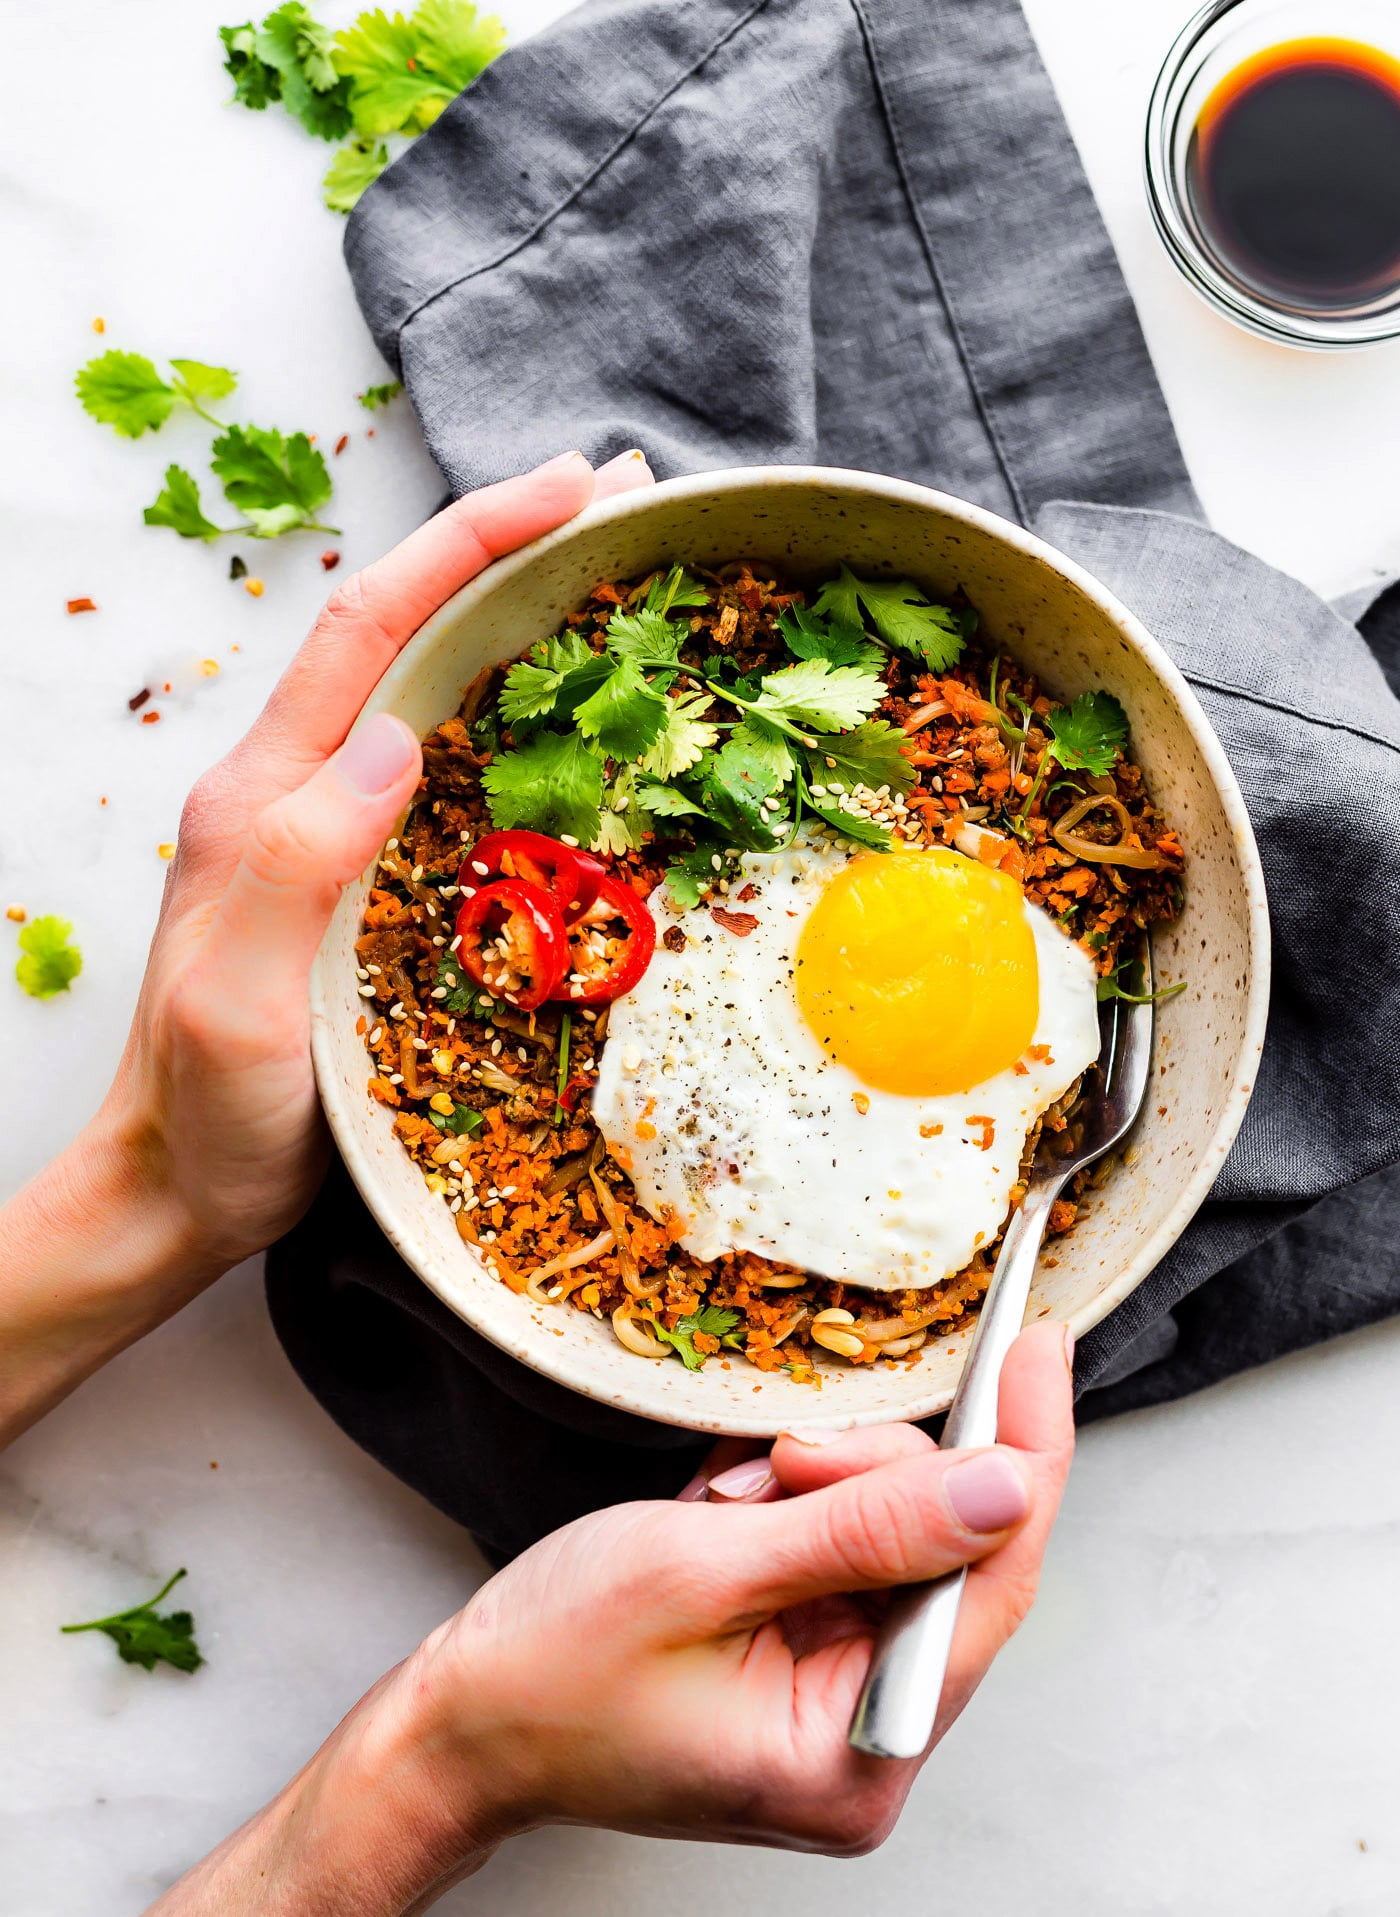 A Indonesian style breakfast Nasi Goreng that's paleo friendly, super flavorful, and packed full of protein and veggies! Cook and serve all in 30 minutes! dairy free- anti inflammatory meal plan!